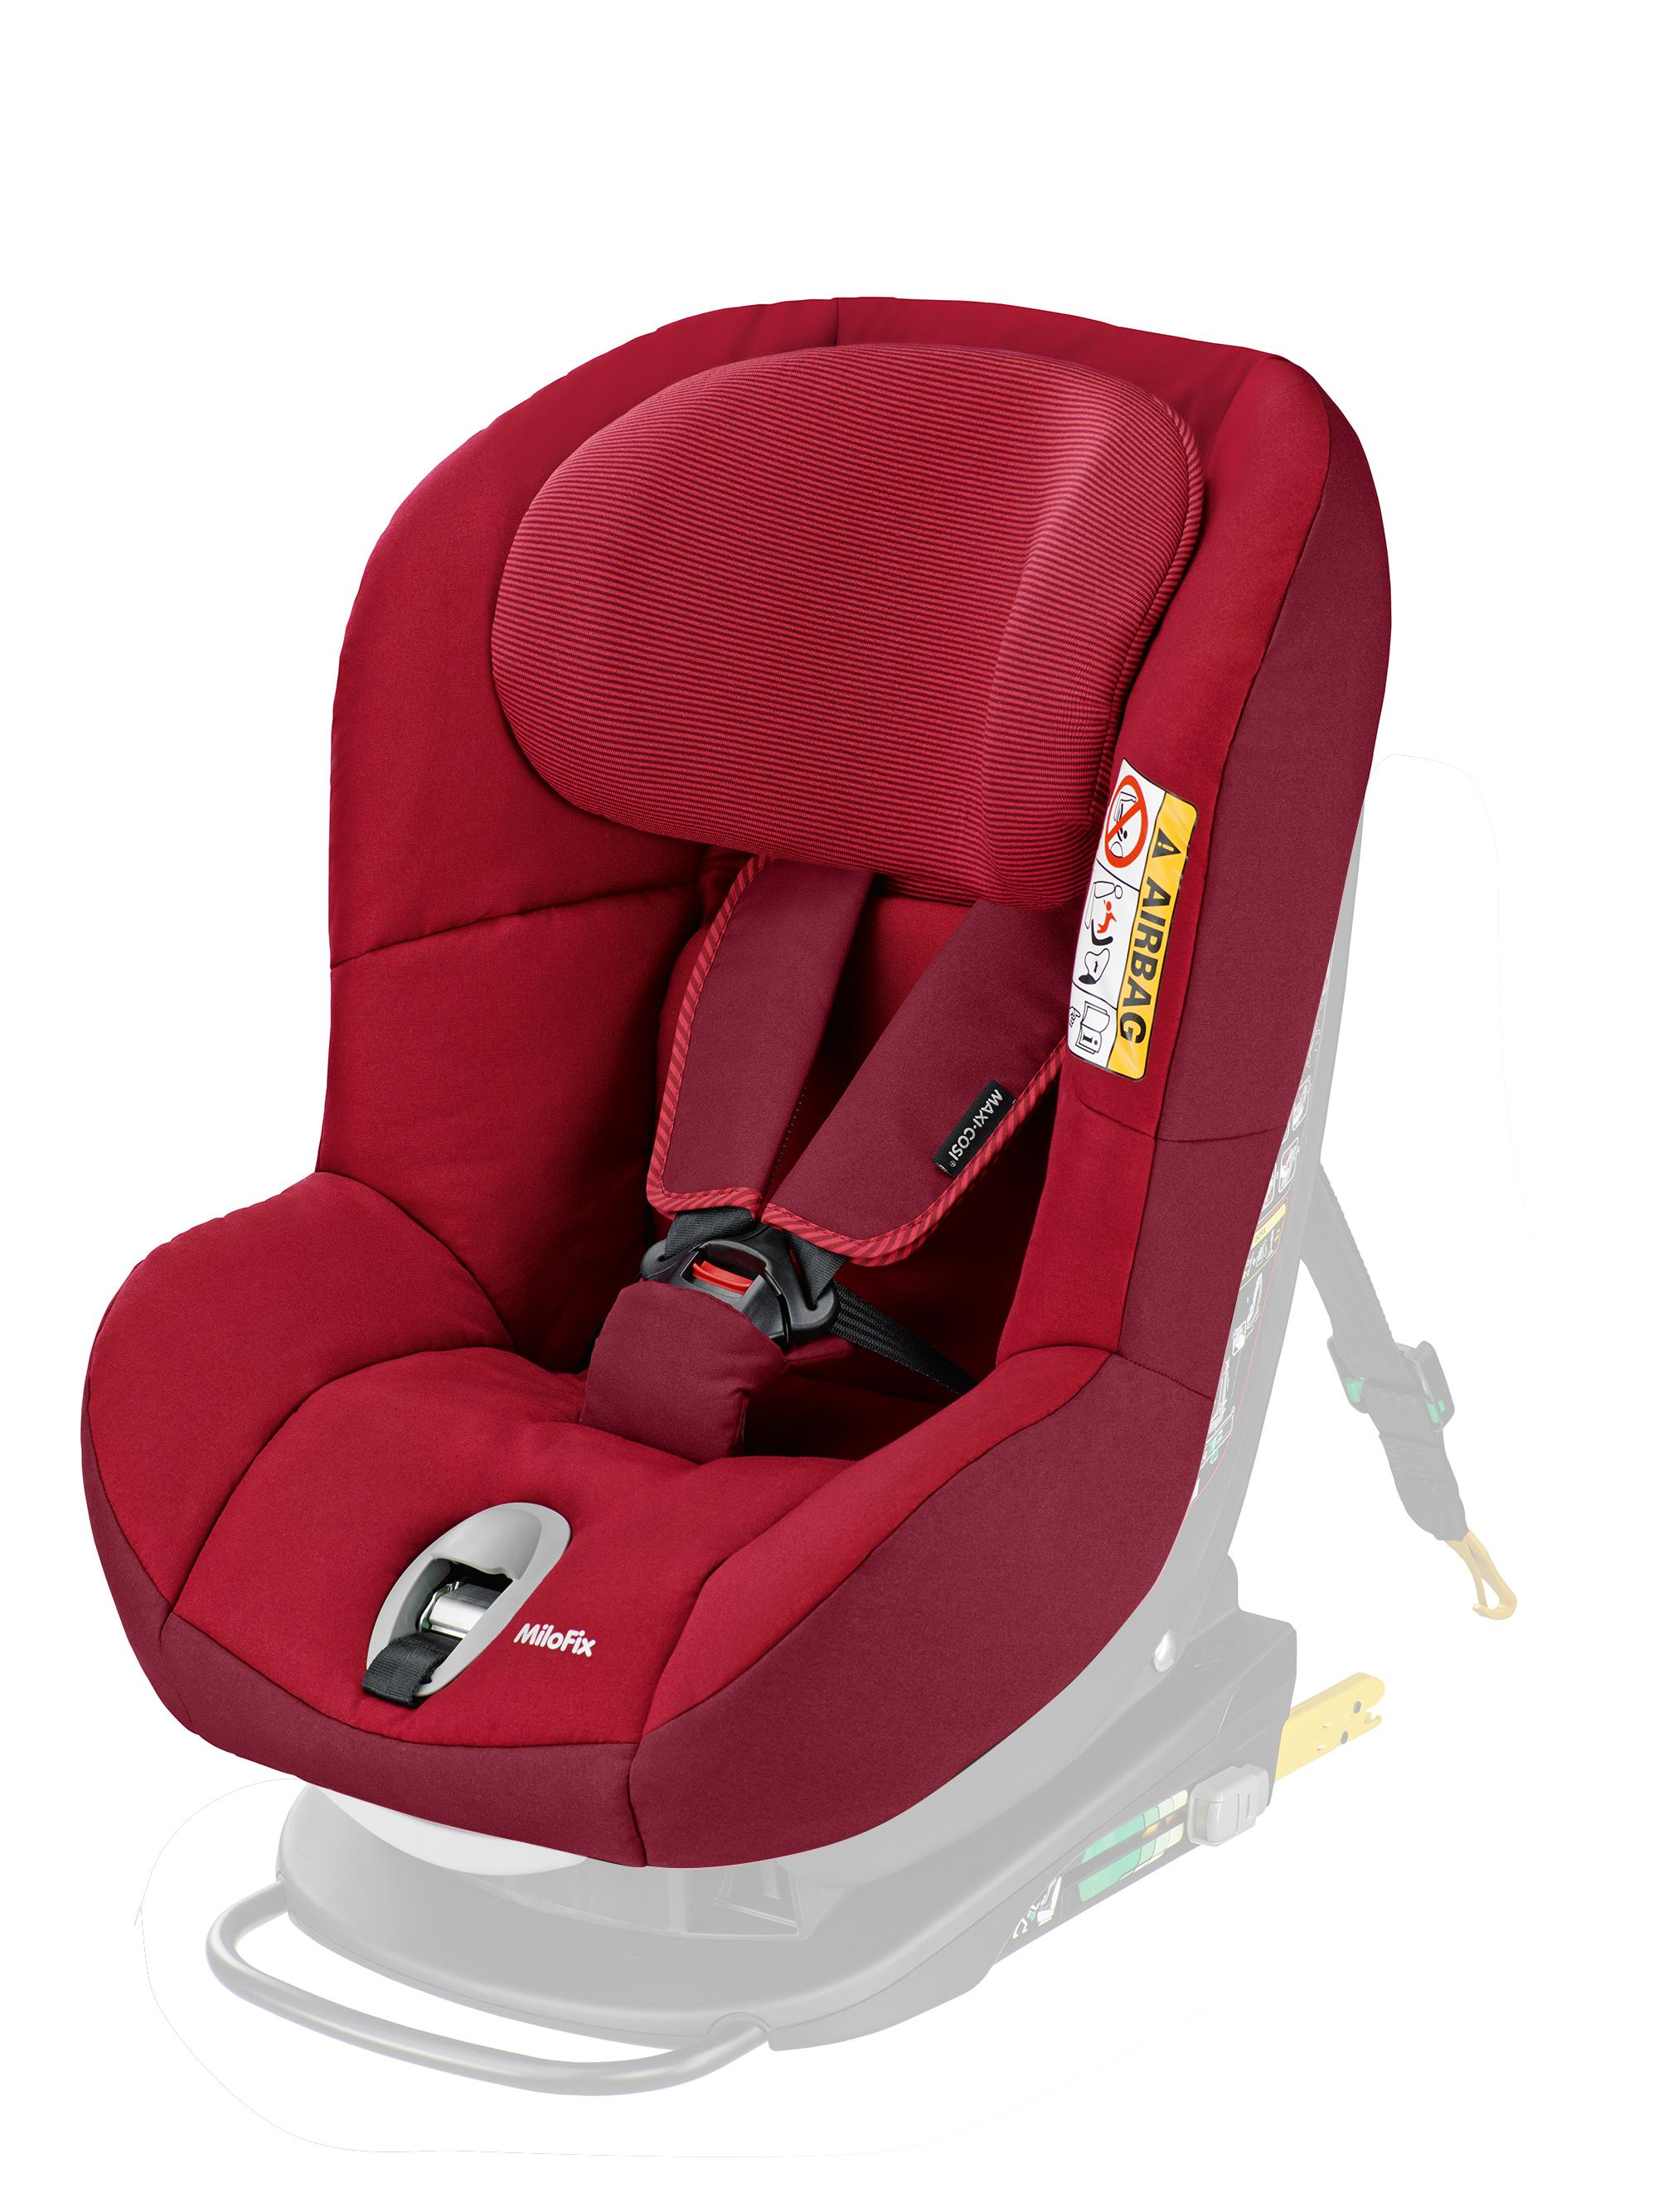 maxi cosi milofix car seat replacement cover robin red baby. Black Bedroom Furniture Sets. Home Design Ideas